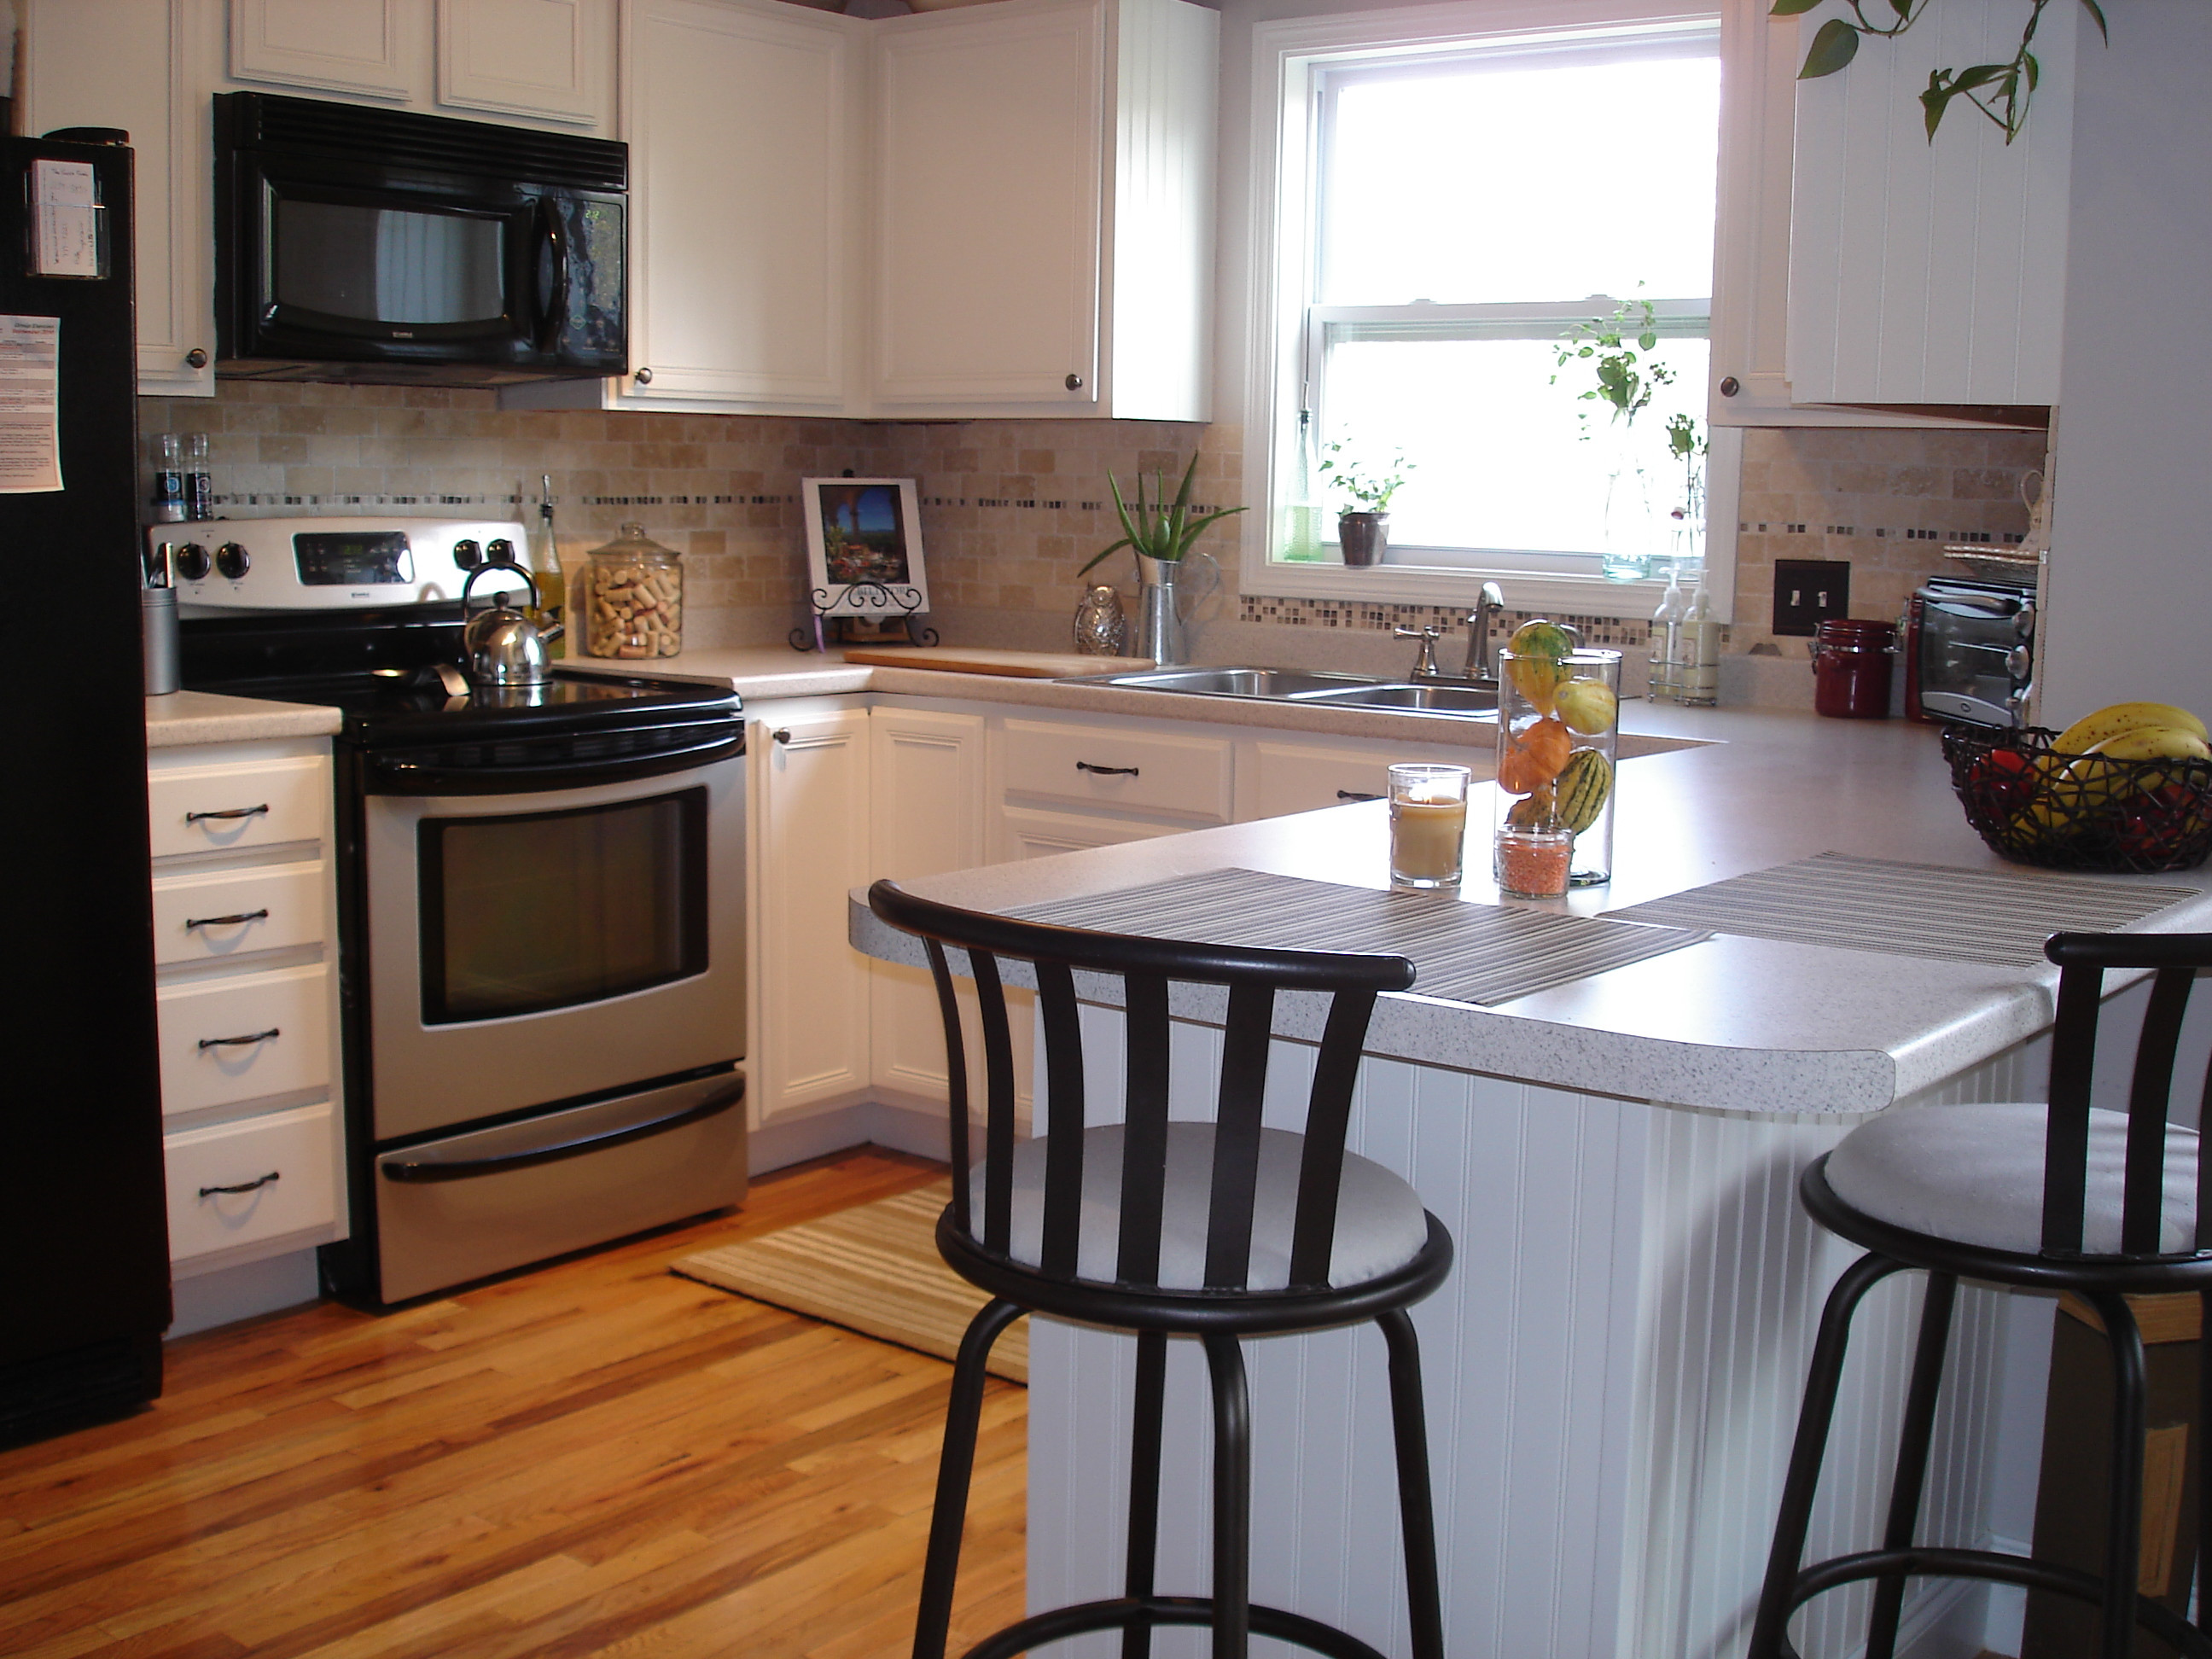 best hardwood floor color with white cabinets of tutorial painting fake wood kitchen cabinets intended for a tutorial painting fake wood kitchen cabinets